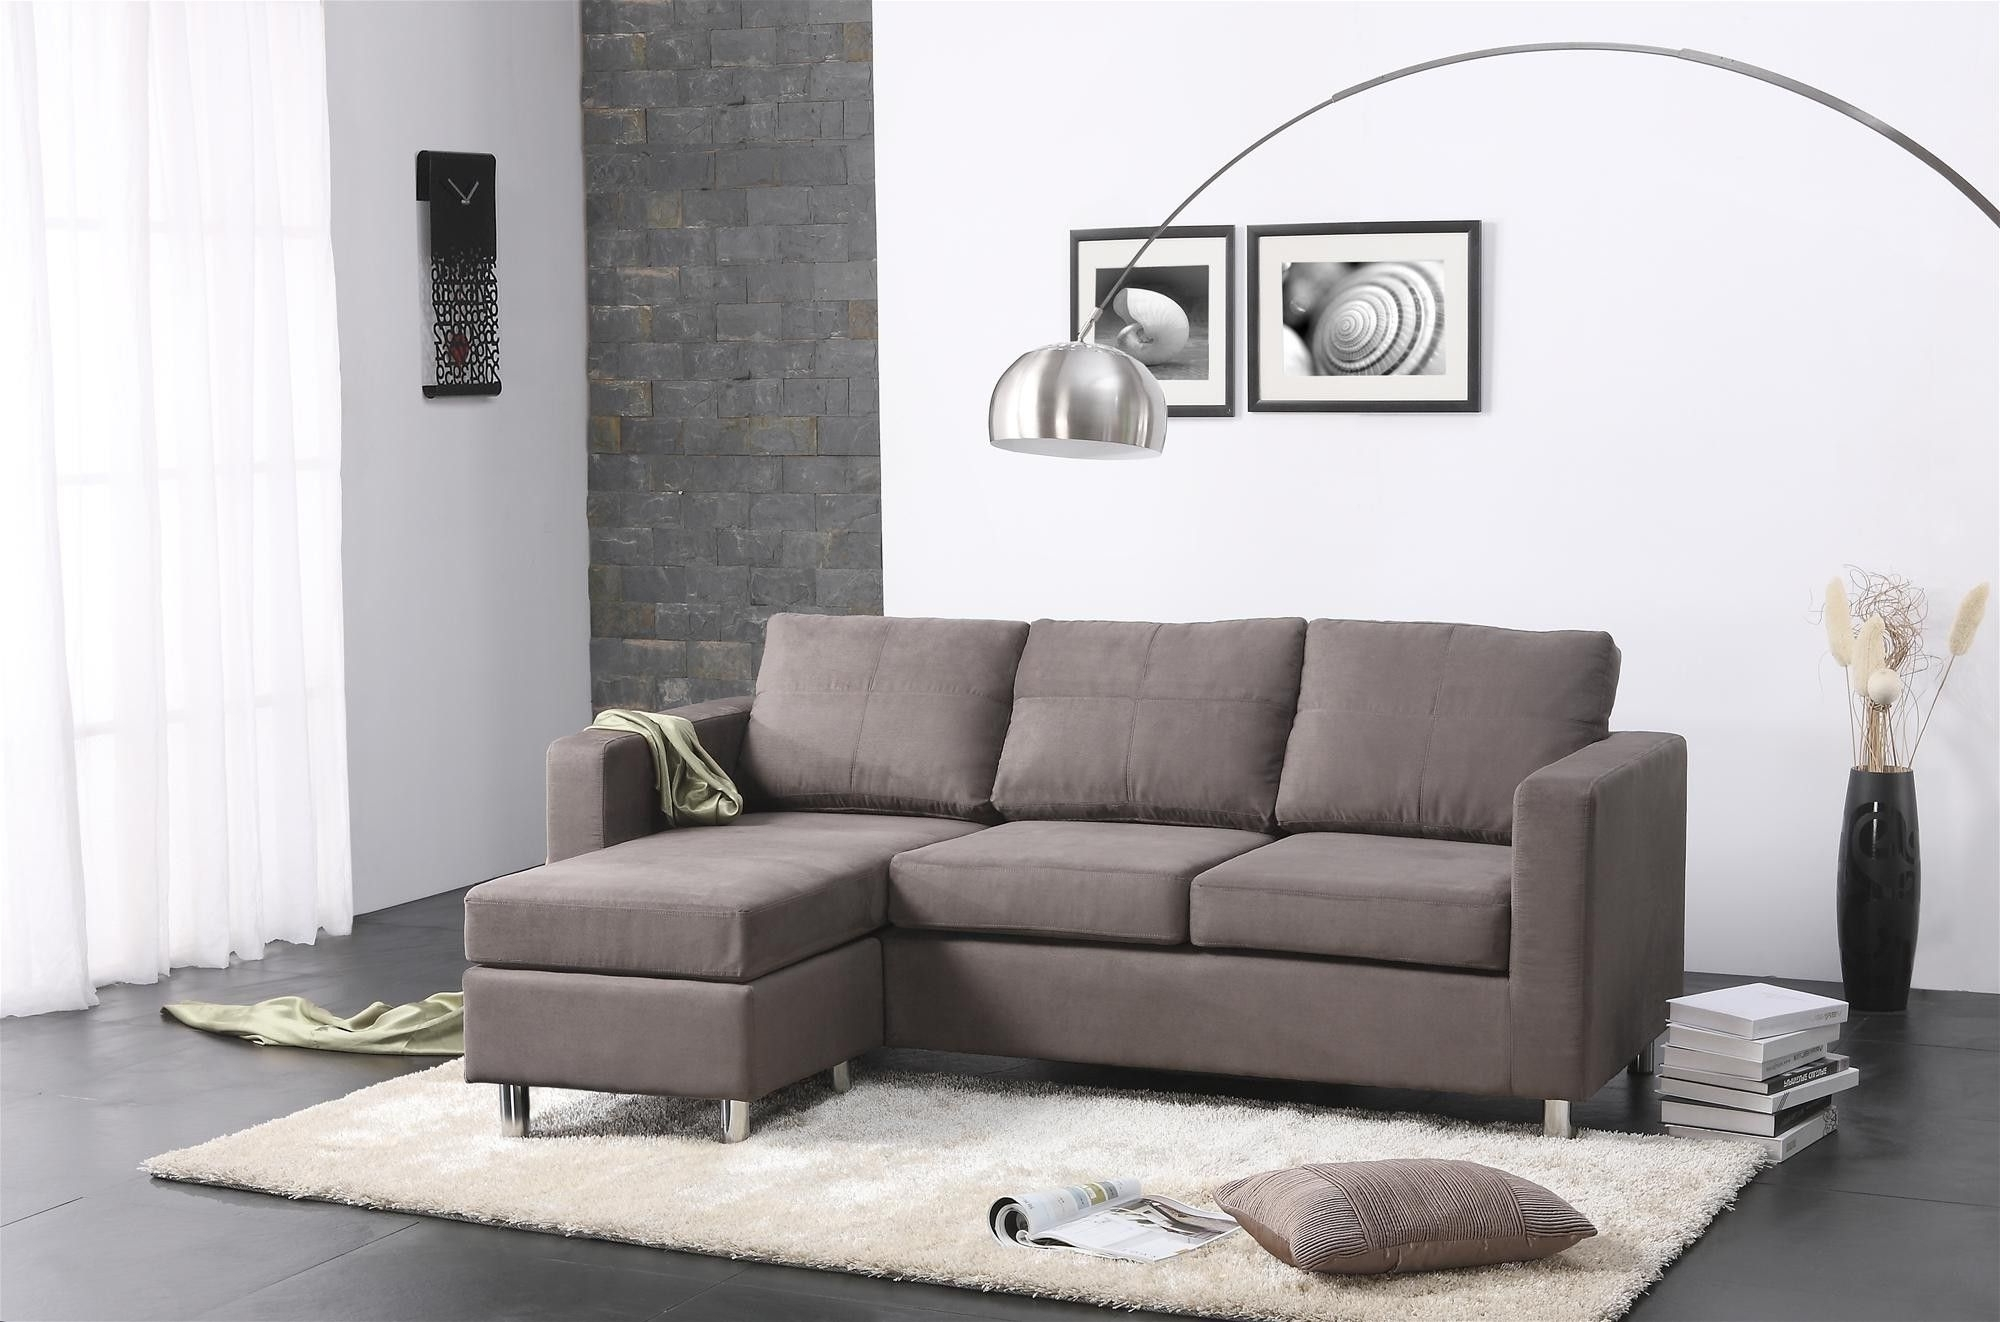 Current Chaise Lounge Chairs For Small Spaces Intended For Amazing Modern Small Spaces Living Room Decors With Grey Sectional (View 15 of 15)